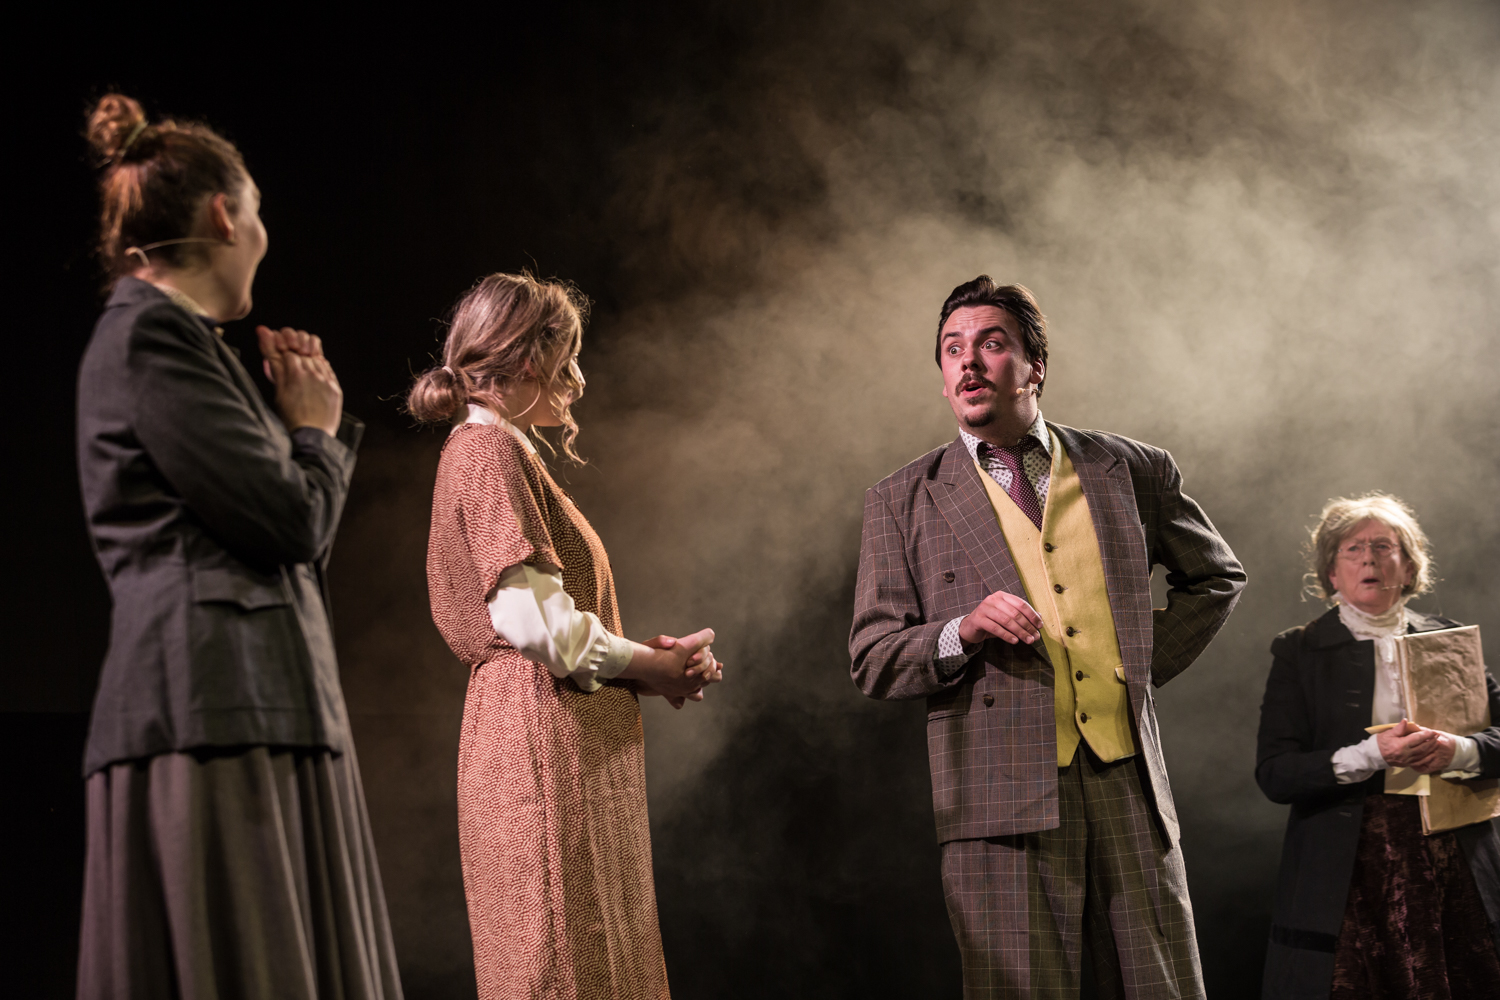 Theatre Production by Michael Scott based on the book by Brinsley MacNamara (Photos Ste Murrary)